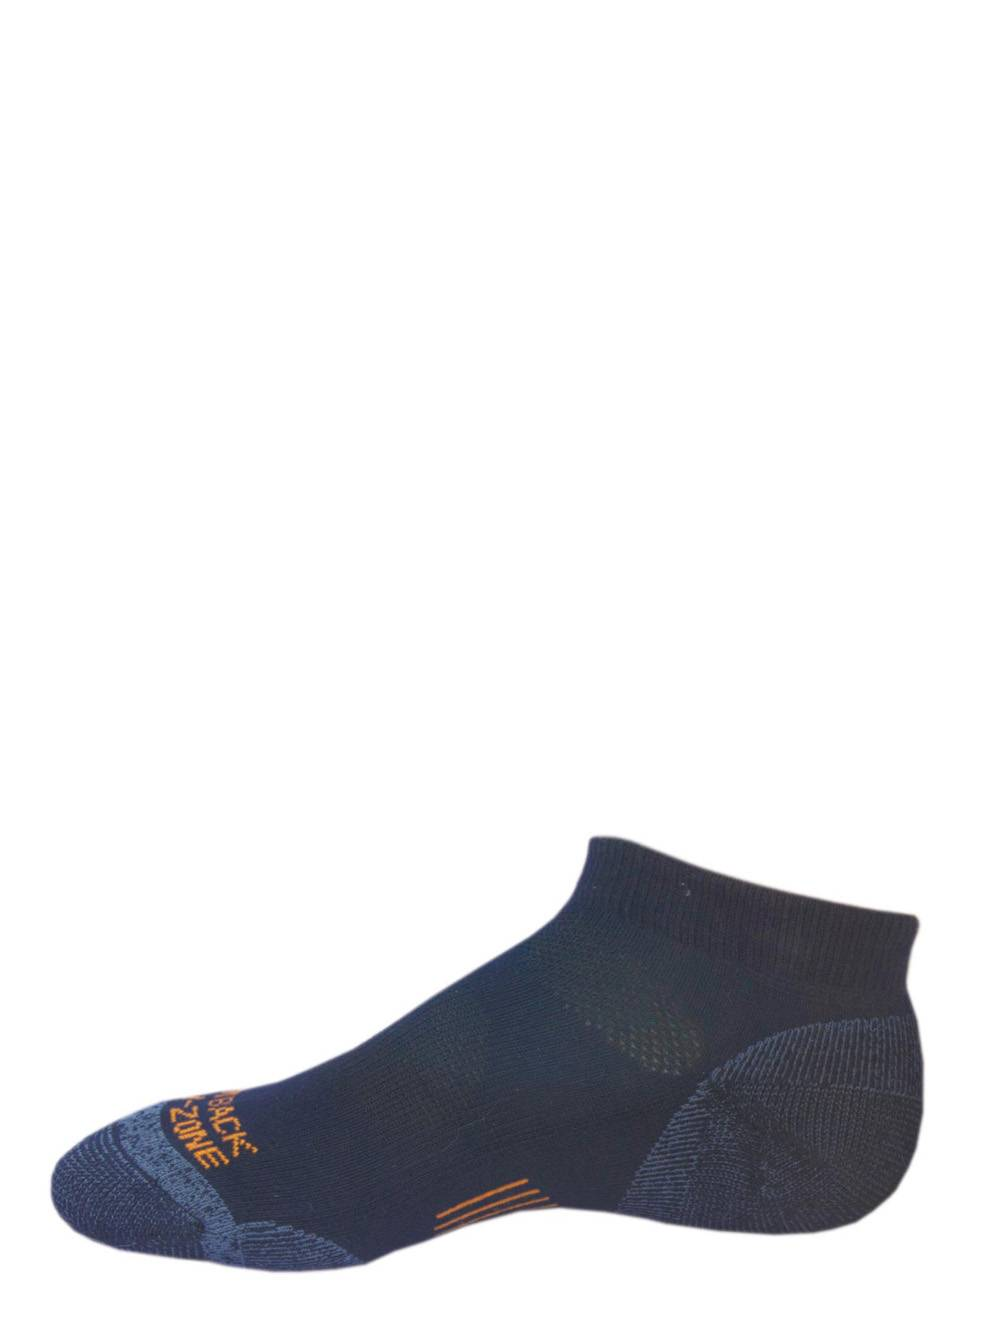 Outback Trading Men's Ankle Sock